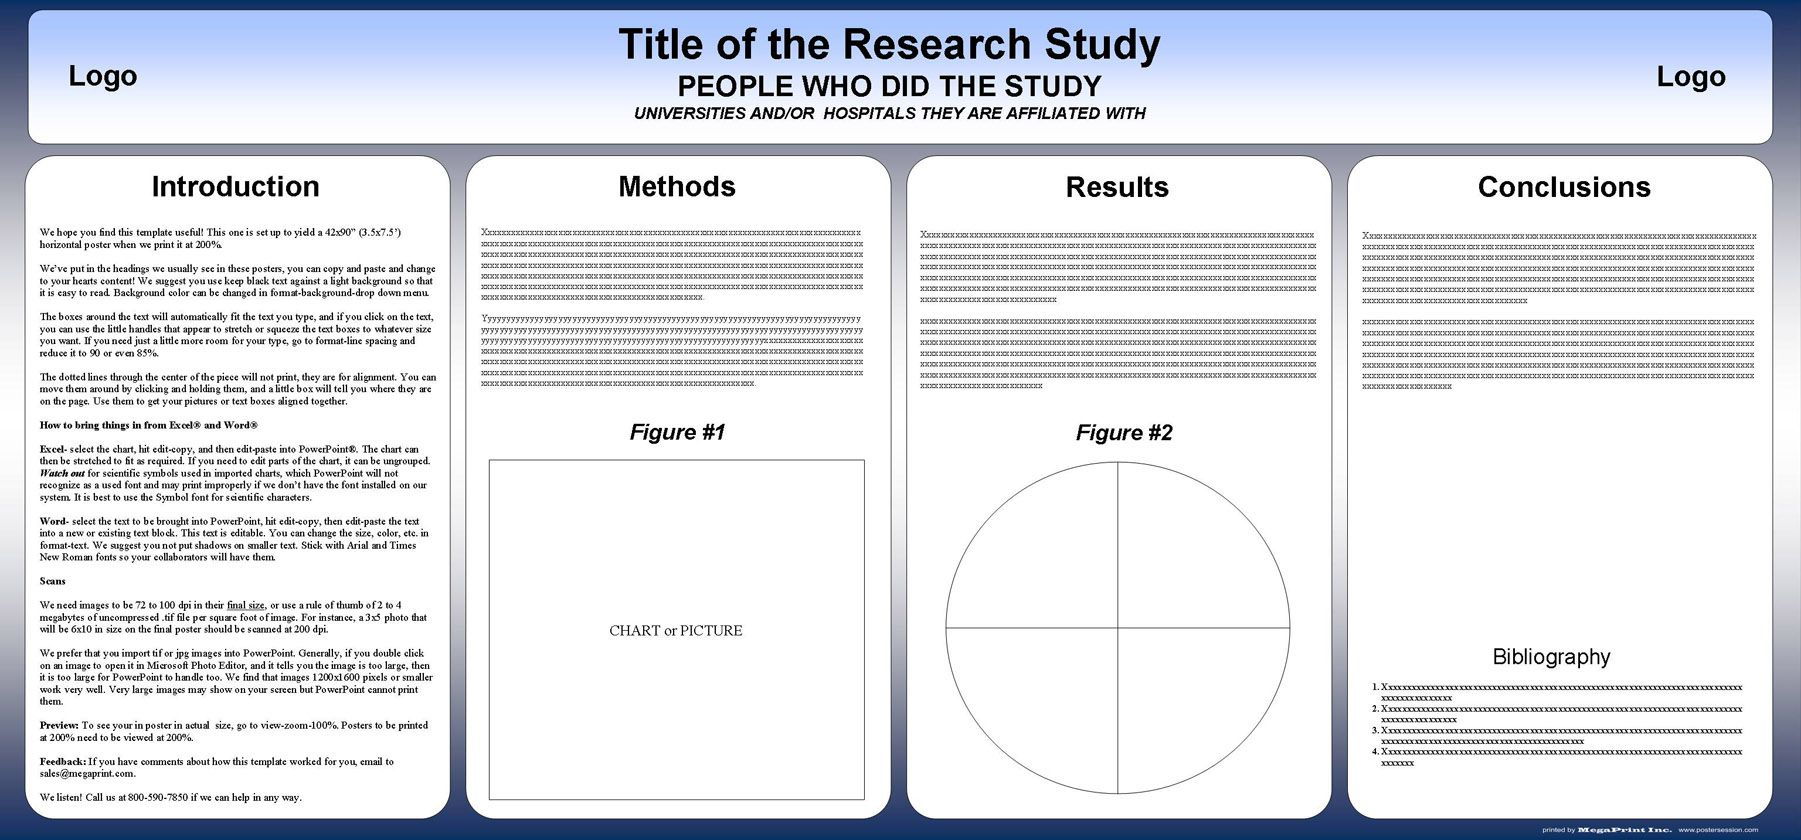 004 Stunning Research Poster Template Powerpoint Example  Scientific PptFull